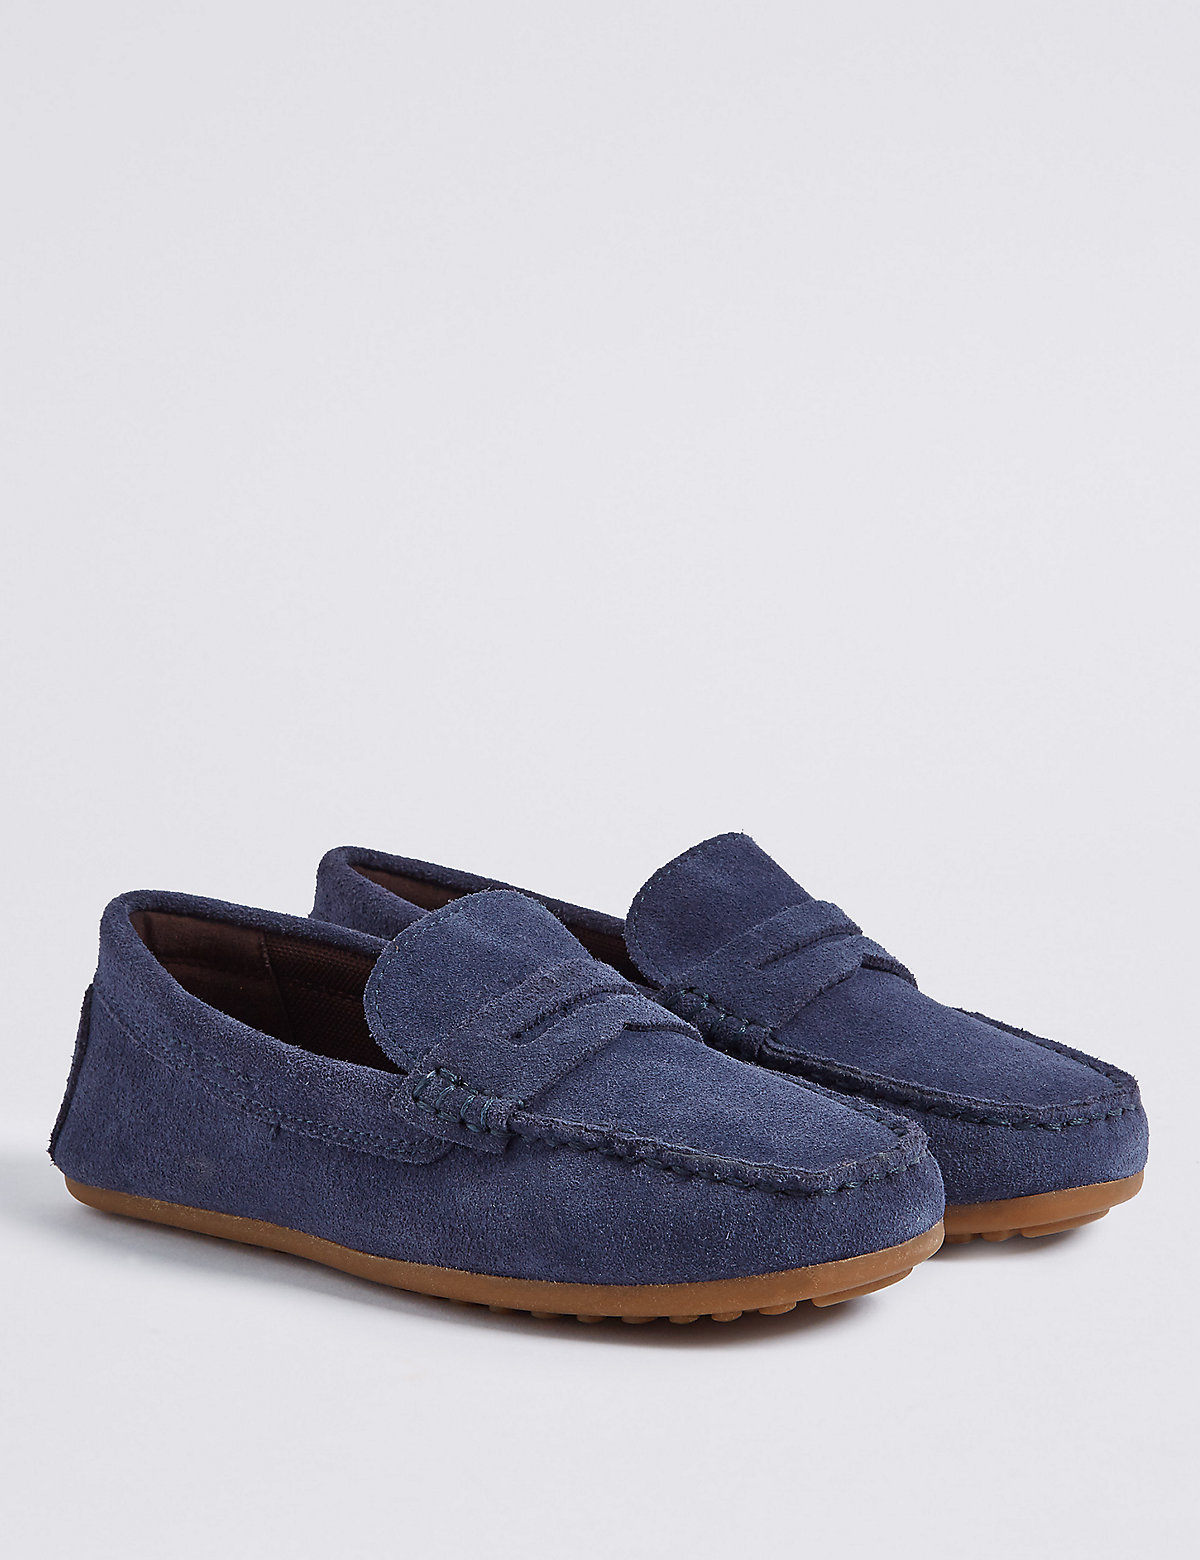 Image of Kids' Suede Driving Shoes